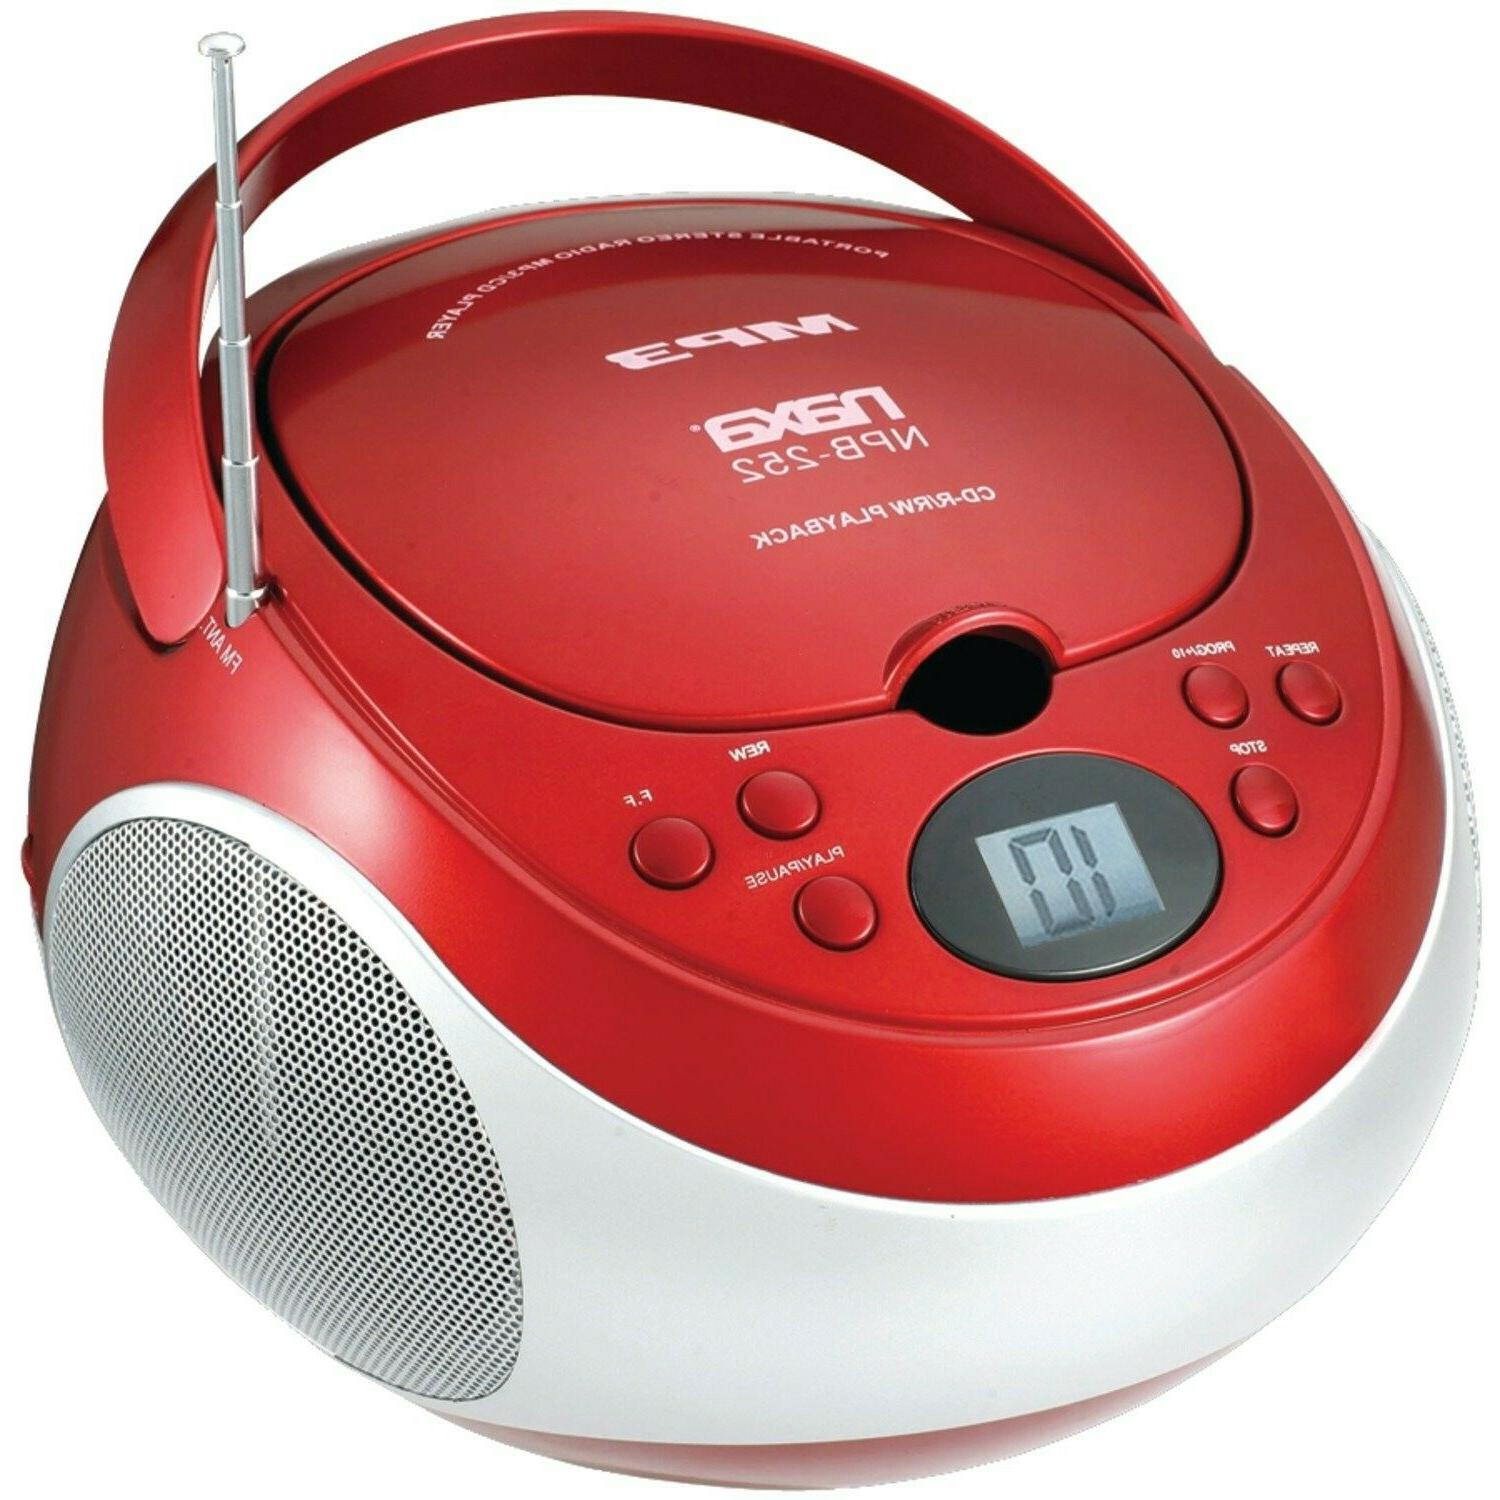 electronics portable mp3 cd player with am